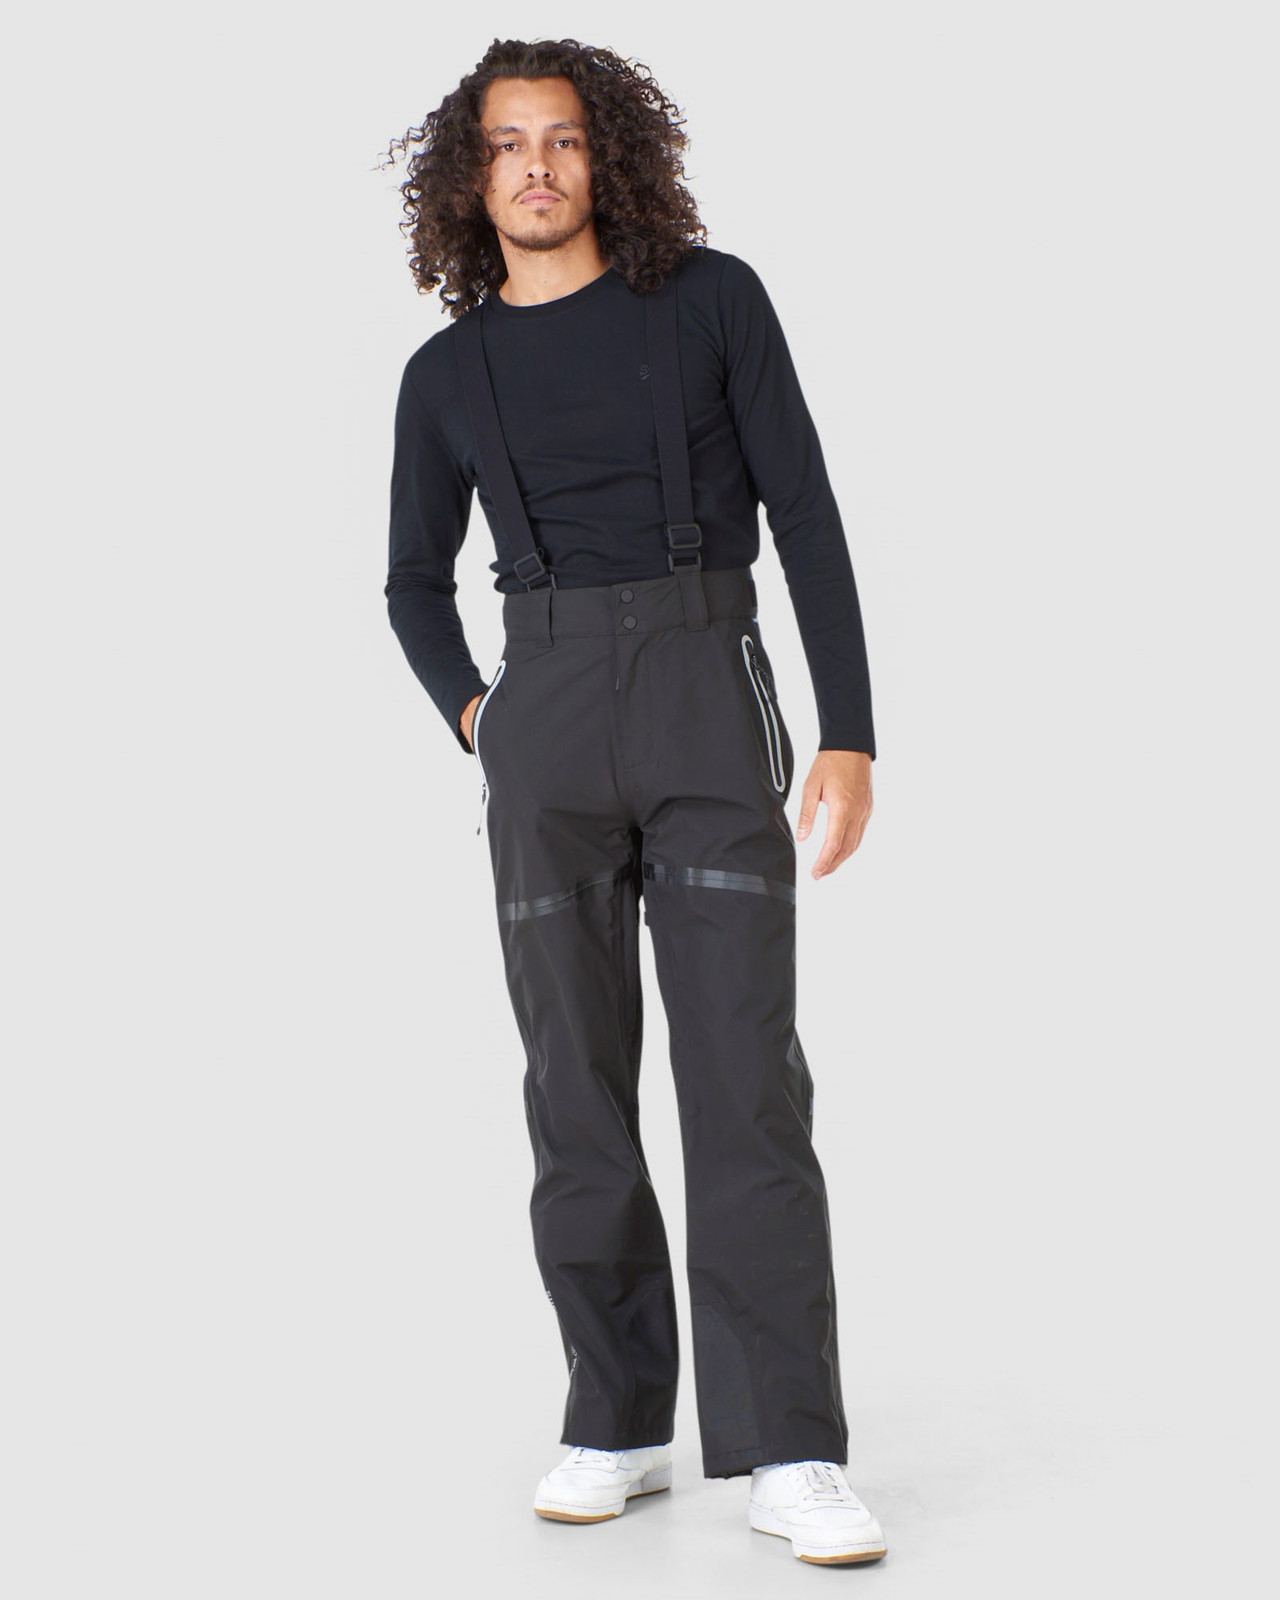 Superdry Mens EXPEDITION SHELL PANT Black Snow Pants 3